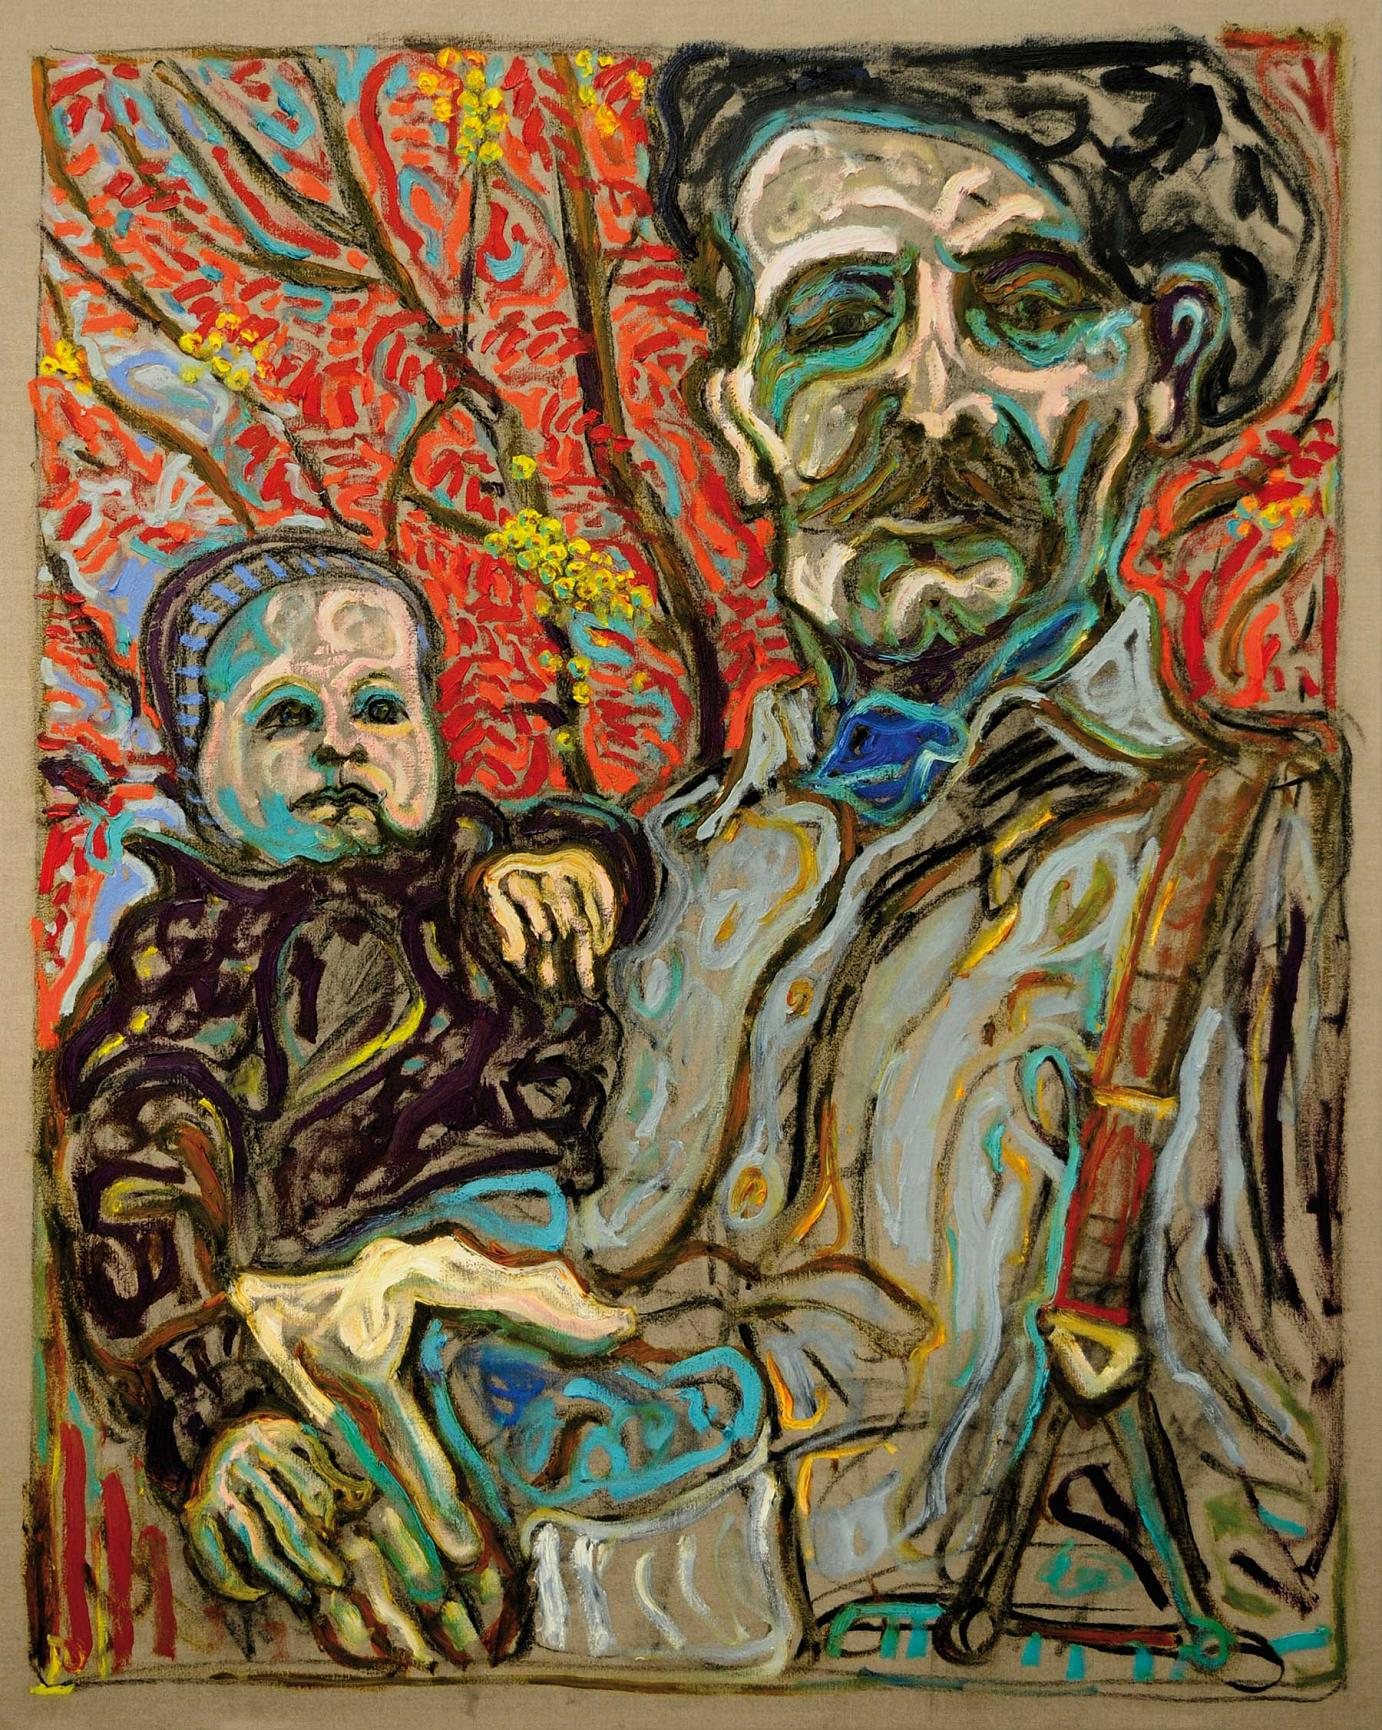 BILLY CHILDISH · With Scout Under Rowan Tree 2011 · Öl und Kohle auf Leinwand · 152 x 122 cm courtesy of the L-13 Light Industrial Workshop